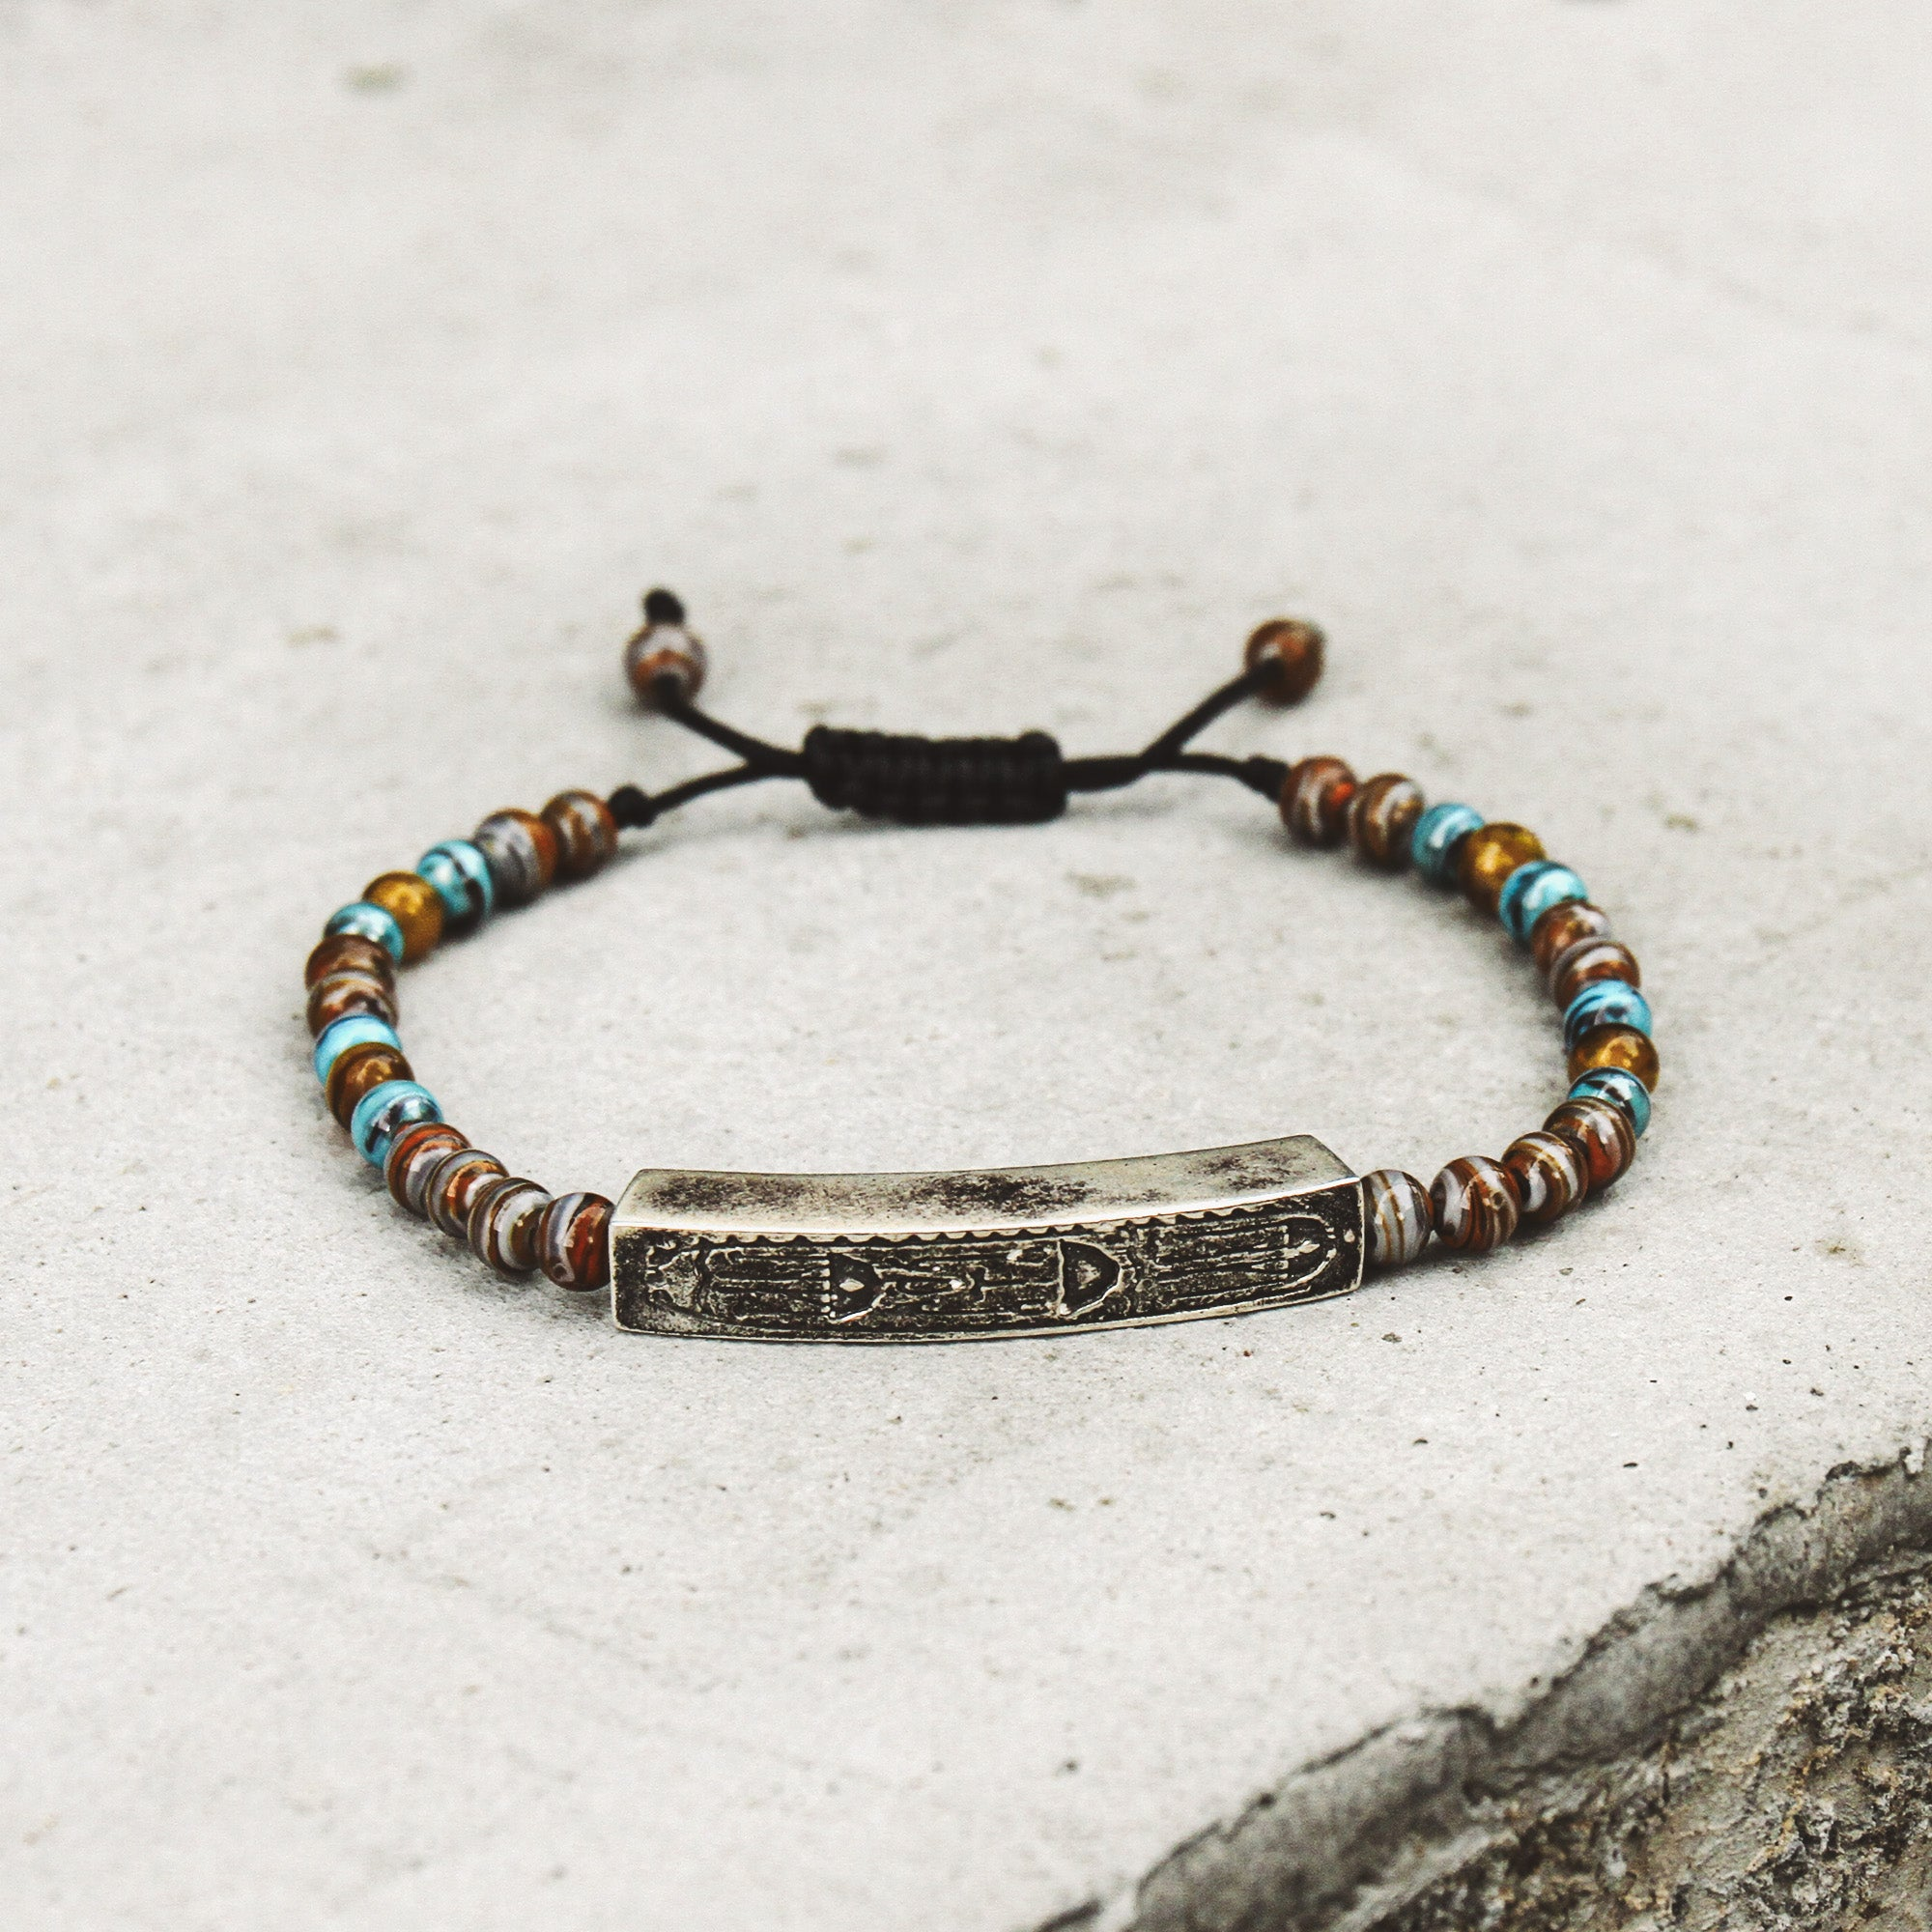 VITAL | Blue and Brown Murano Glass Bead Bracelet with Hieroglyphics Bar